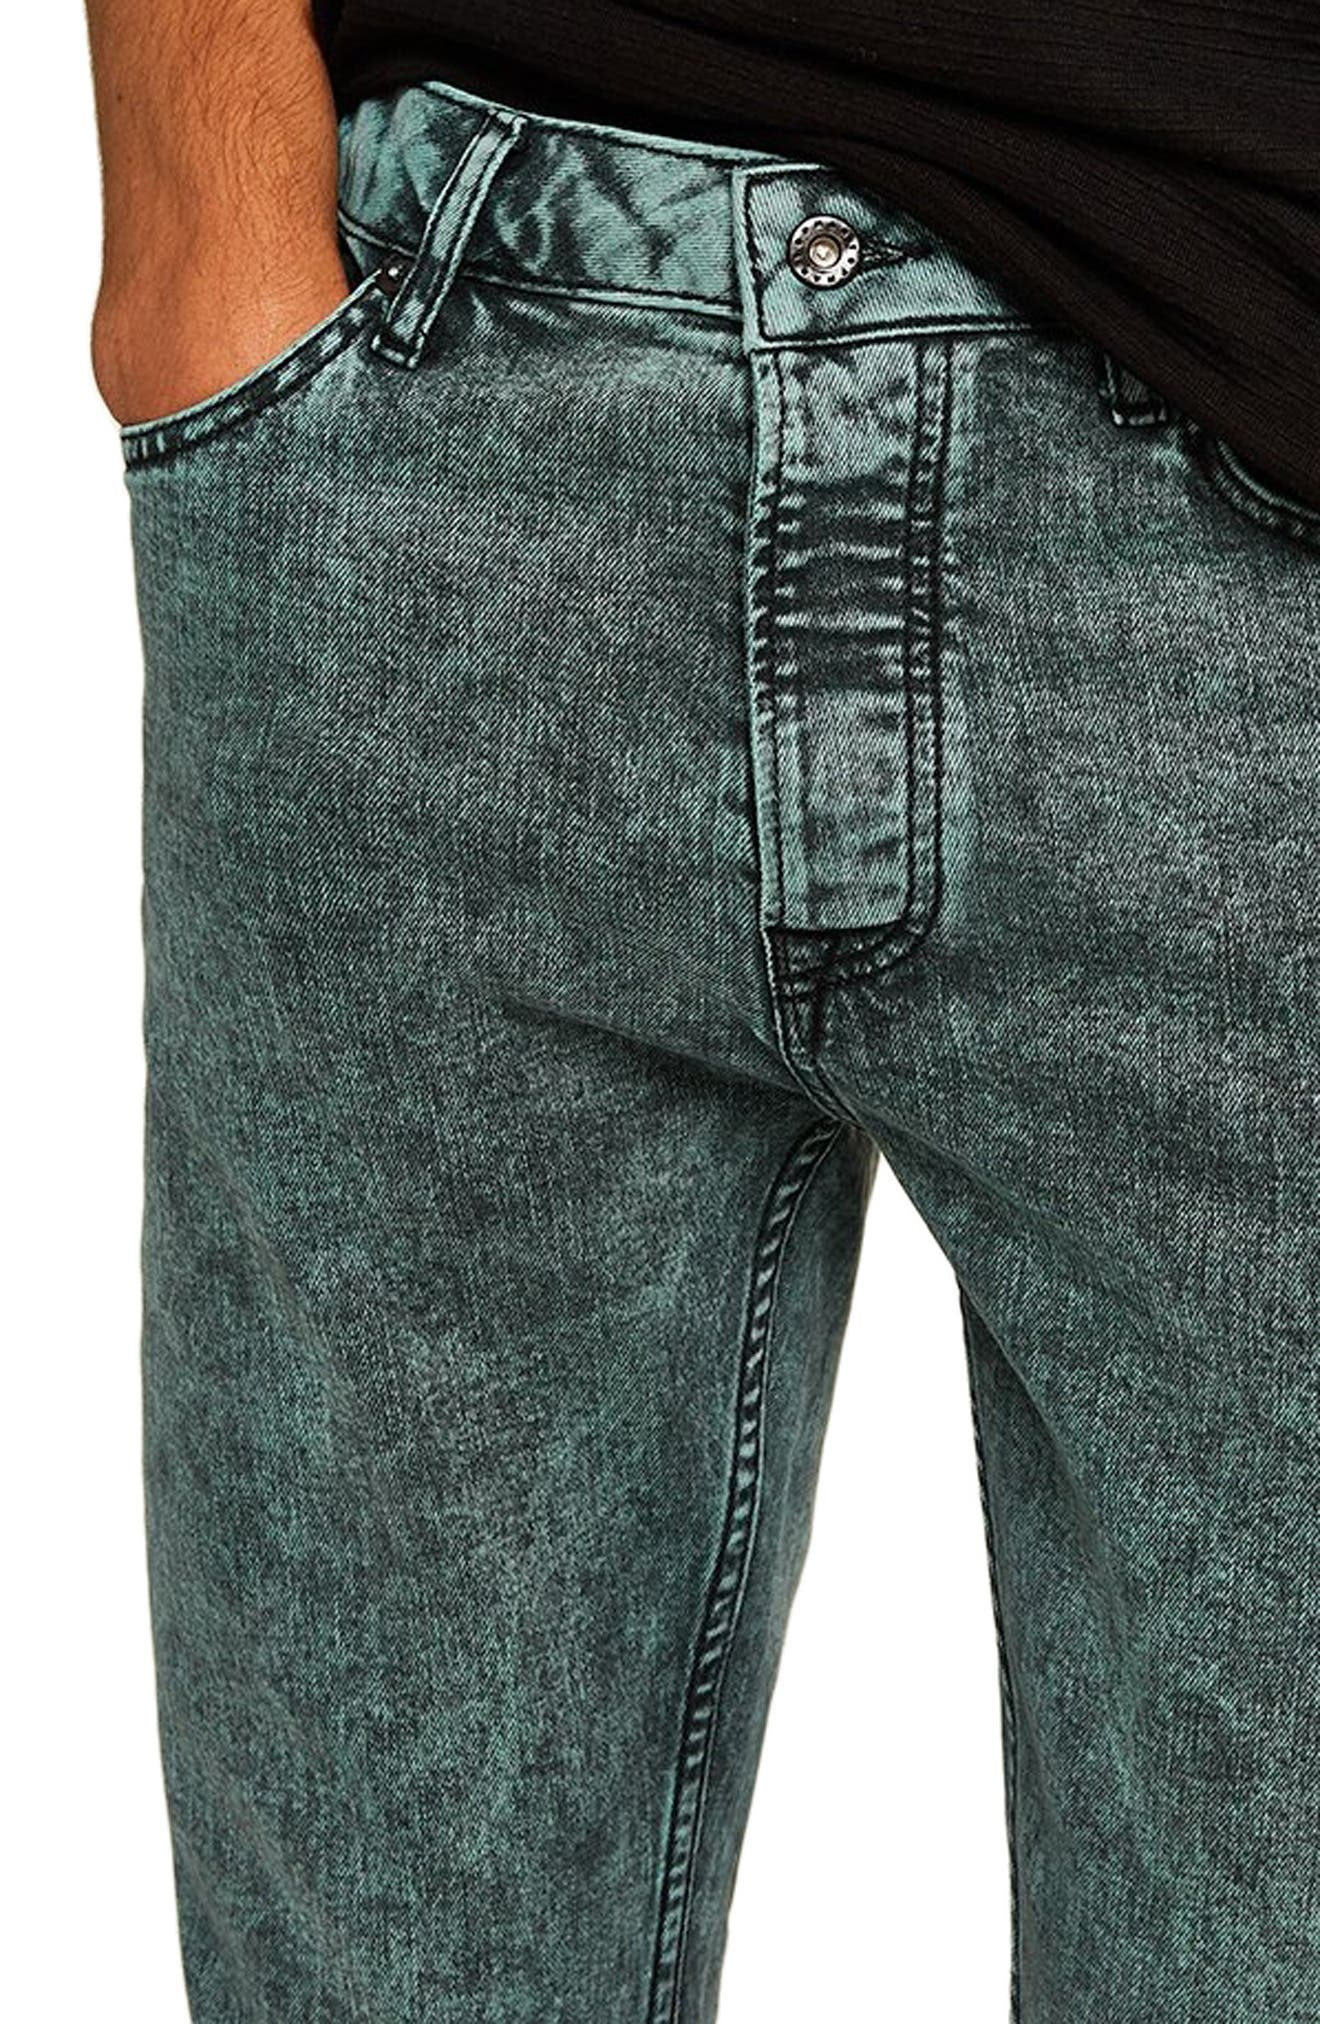 Acid Wash Stretch Skinny Jeans,                             Alternate thumbnail 3, color,                             BLUE/GREEN MULTI